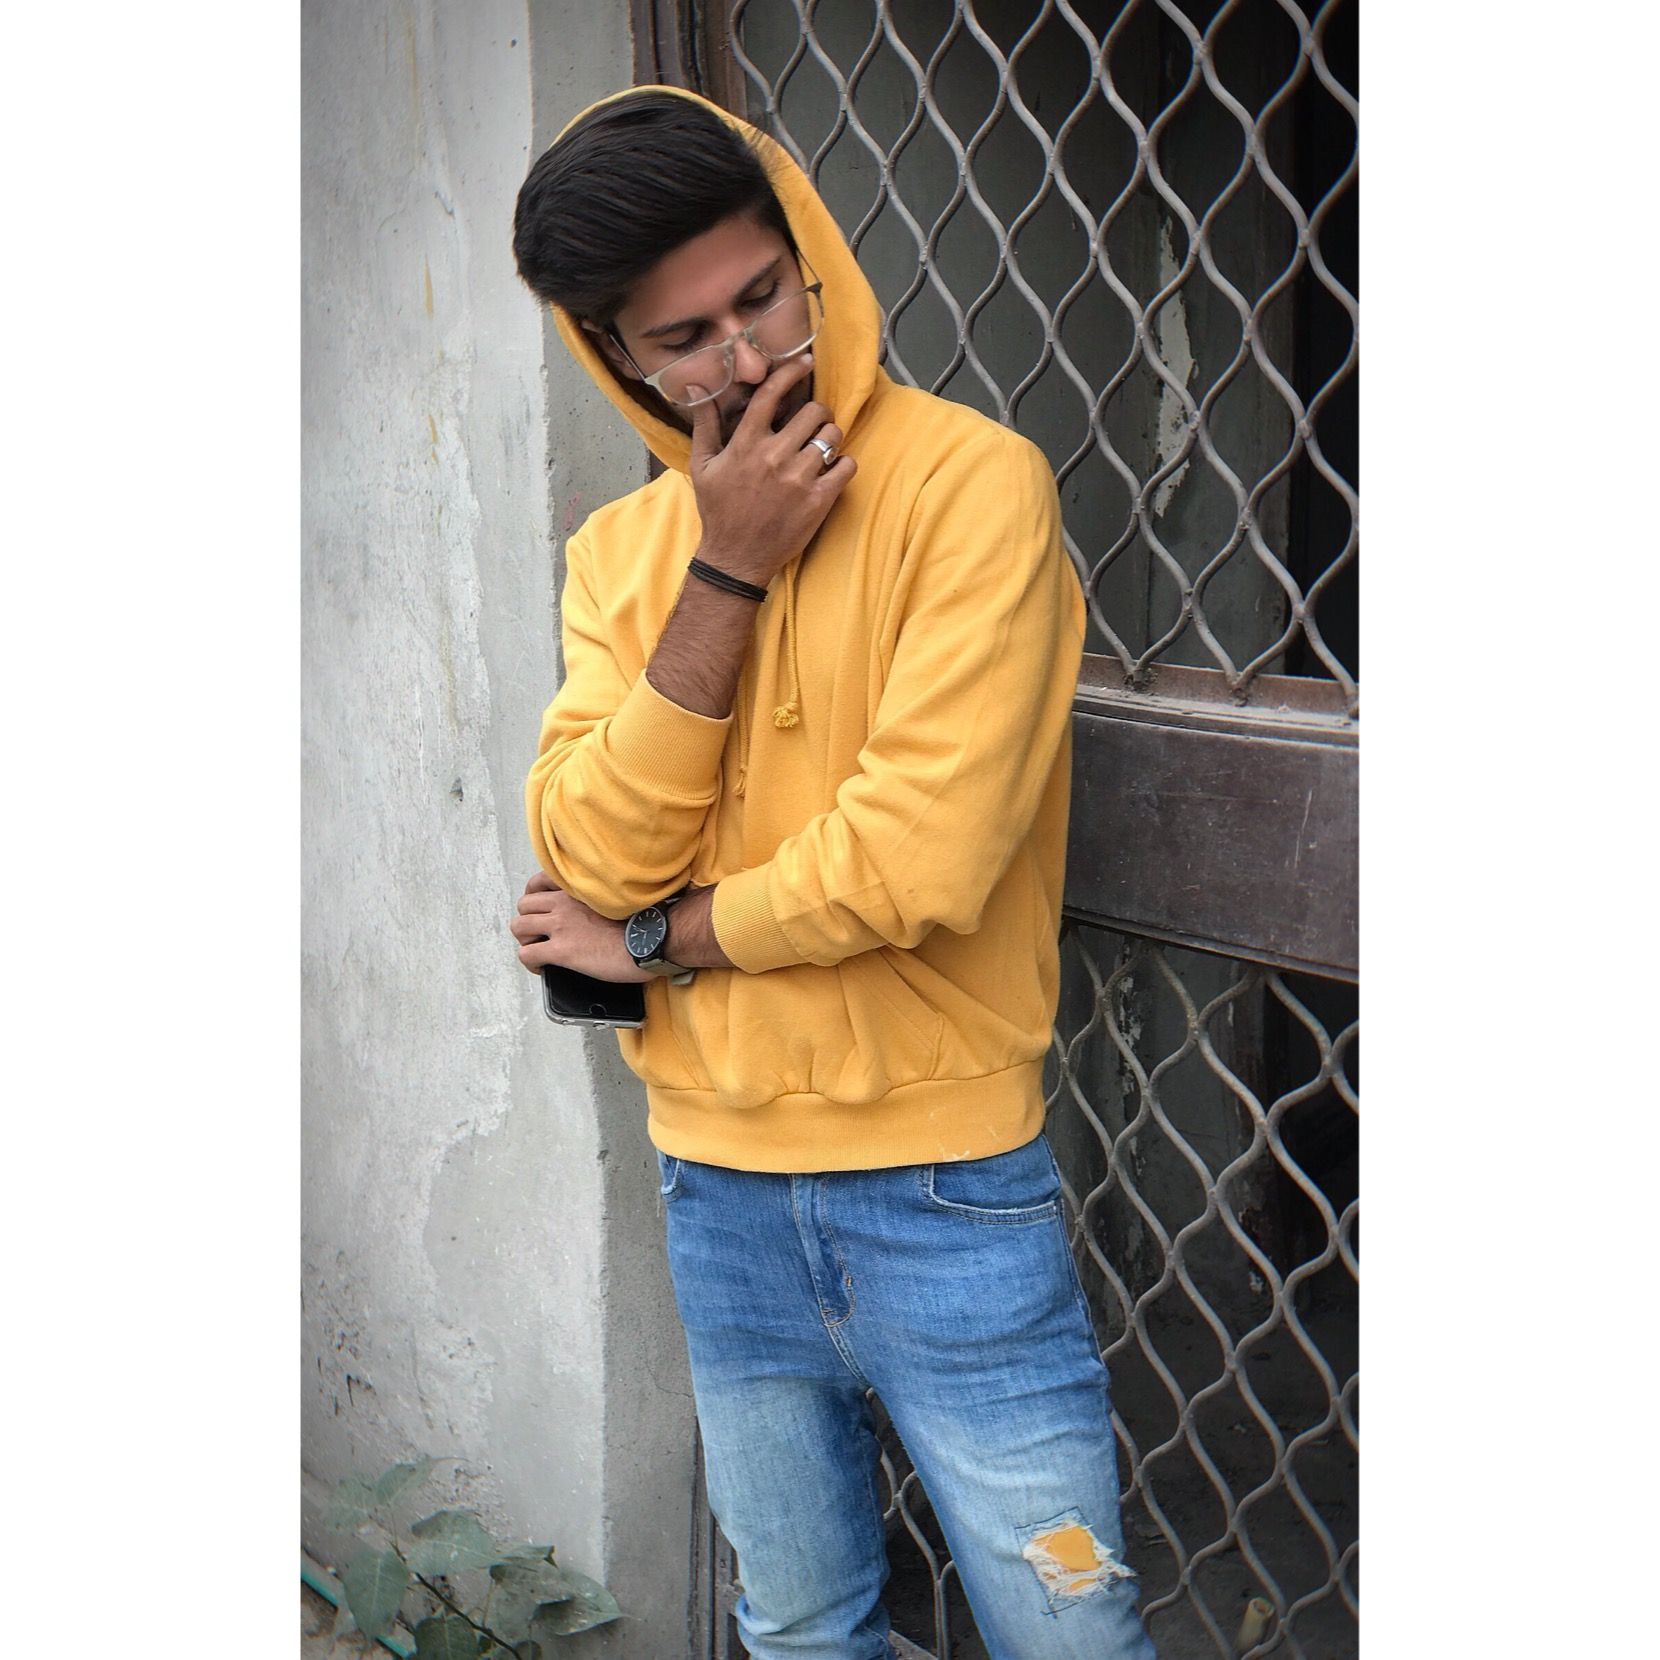 Mefaadi Girls Dp Stylish Yellow Hoodie Photography Poses For Men